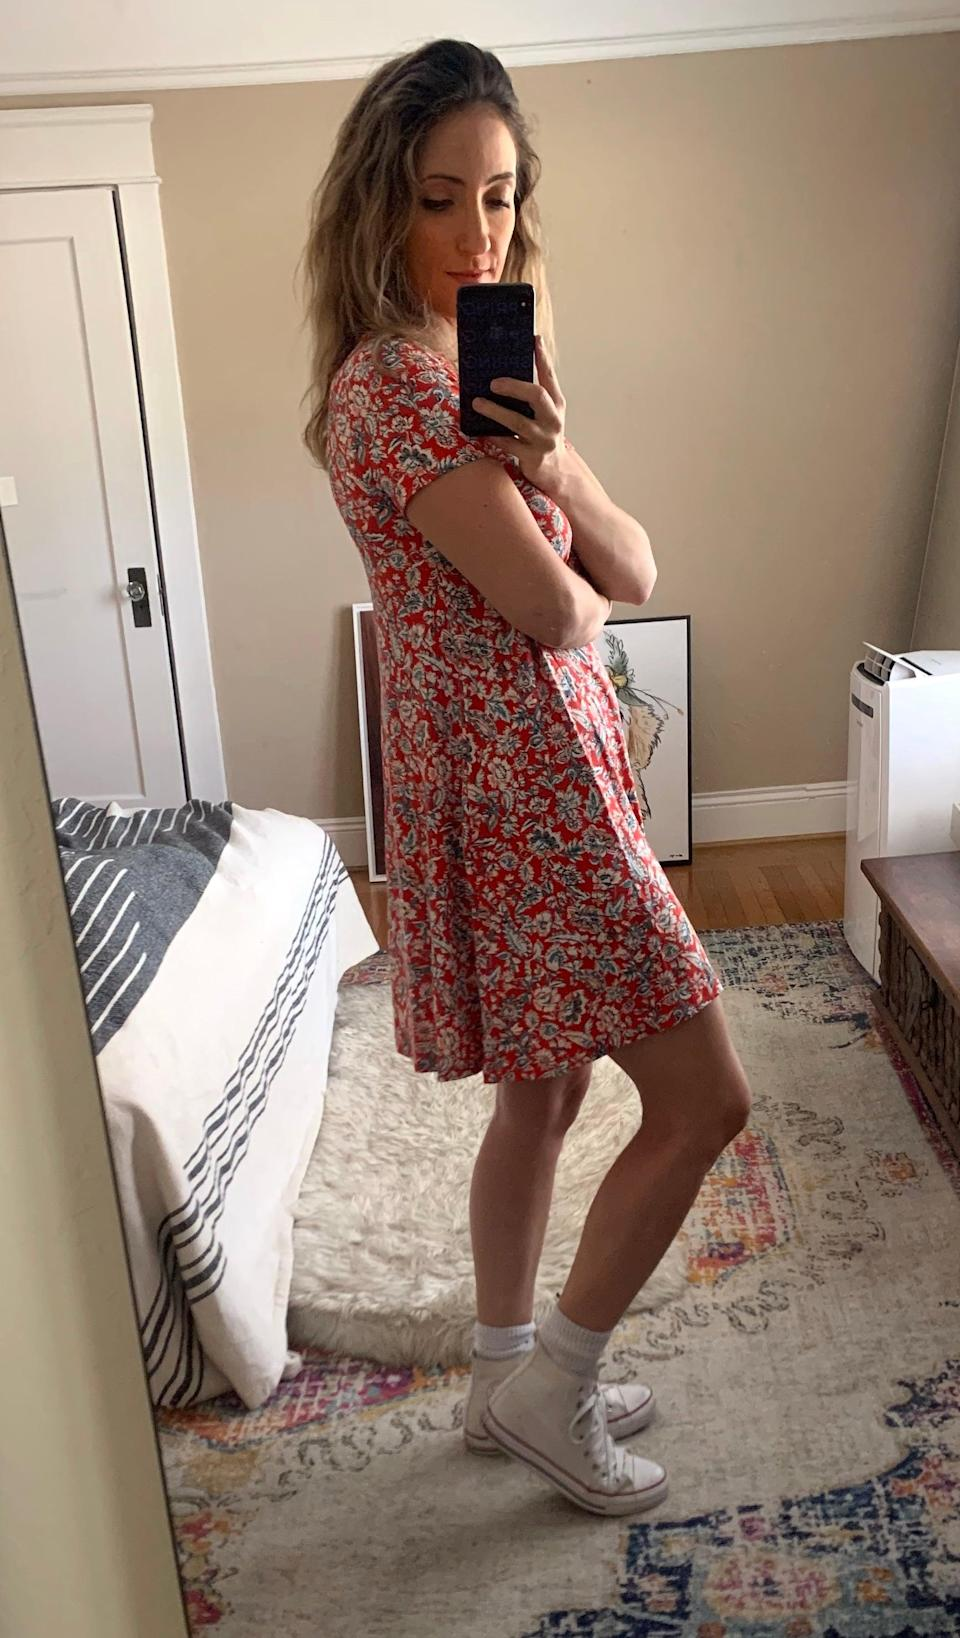 "<p><strong>Item</strong>: <span>Old Navy Jersey Swing Dress </span> ($21)</p> <p><strong>What our editor said: </strong>""The dress fits exactly like a T-shirt up top and is relaxed through the body with a flared hem that swings out as you walk, so there is a ton of space to move around. I also didn't want it to be too long because I knew I'd want to wear the dress with socks and sneakers; I like when dresses hit a few inches up above the knee."" - RB<br> If you want to read more here is the <a href=""https://www.popsugar.com/fashion/comfortable-floral-dress-at-old-navy-editor-review-47582000"" class=""link rapid-noclick-resp"" rel=""nofollow noopener"" target=""_blank"" data-ylk=""slk:complete review"">complete review</a>.</p>"